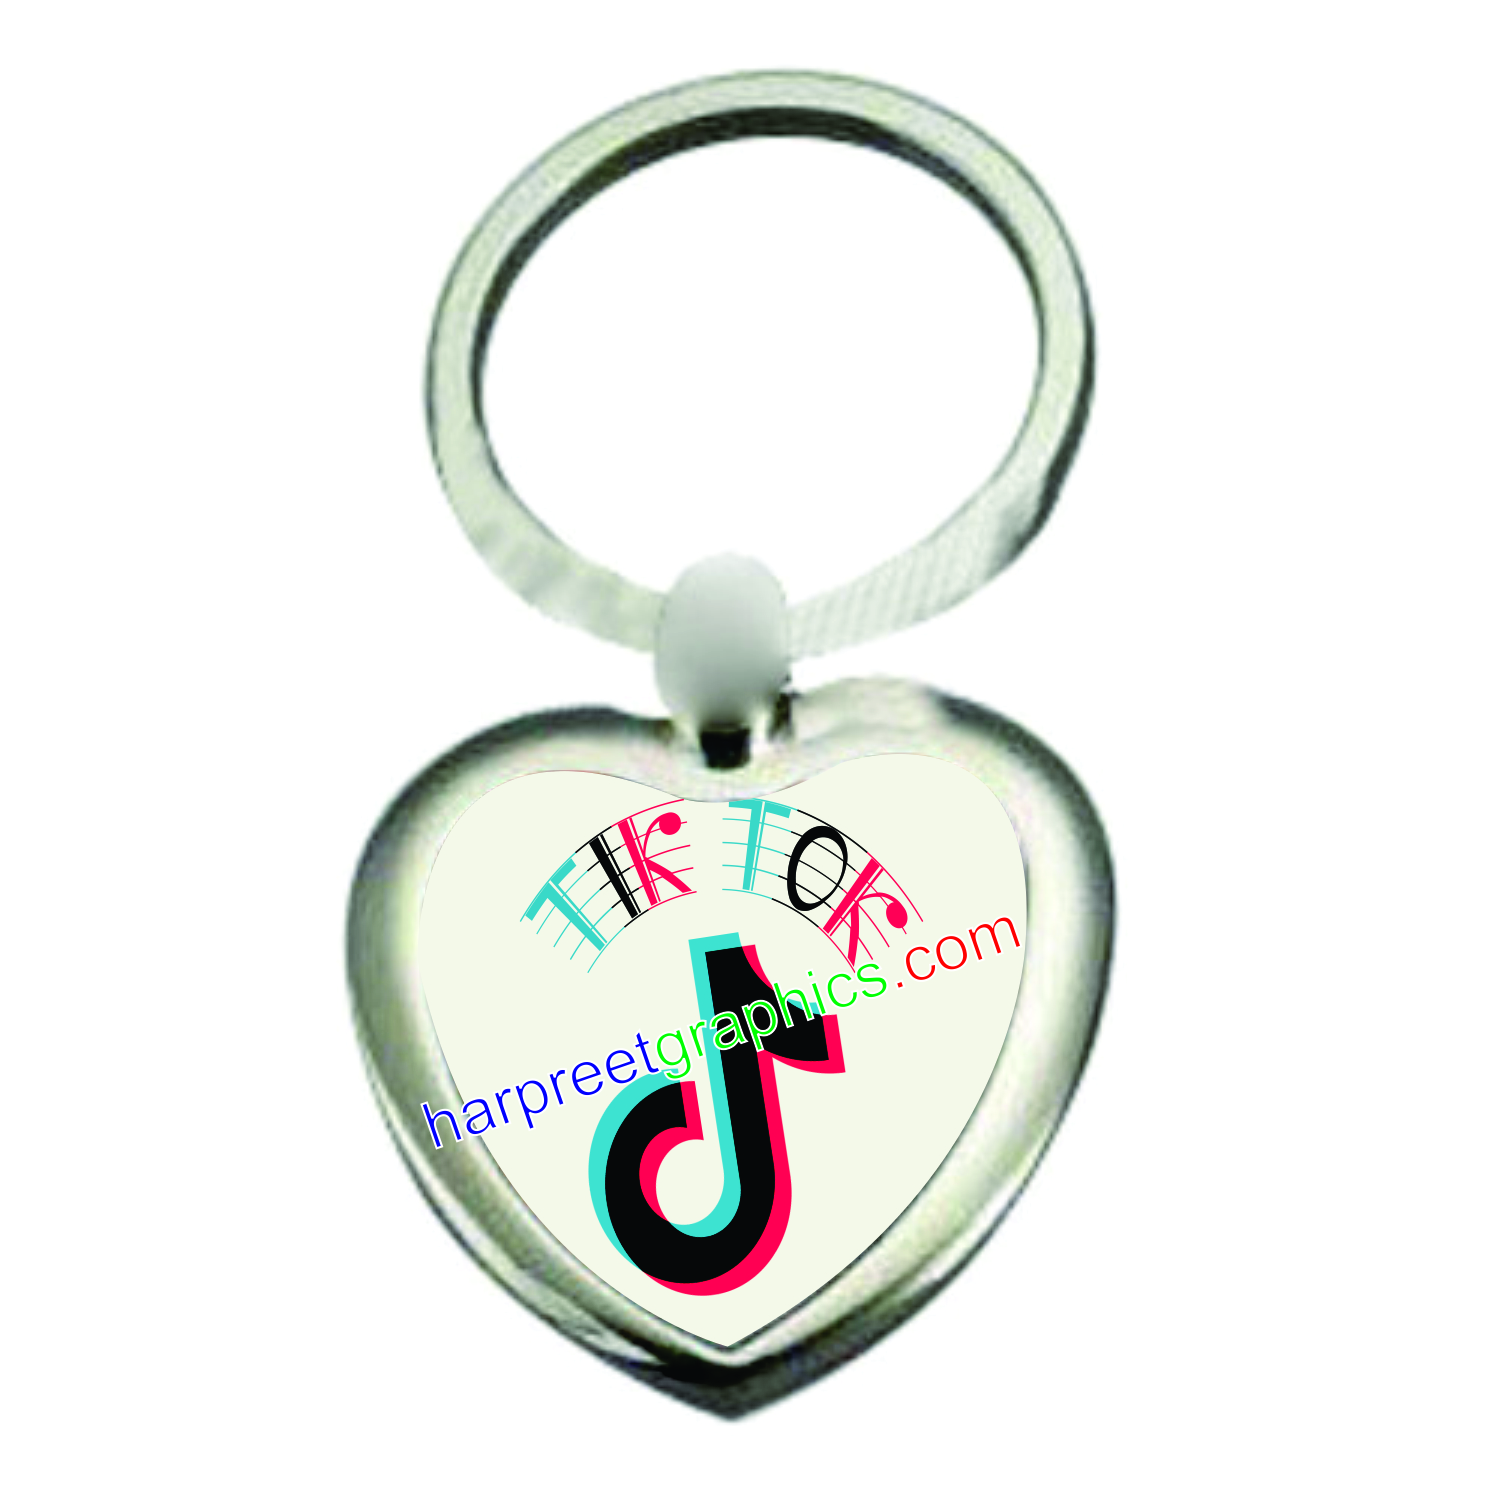 SUBLIMATION METAL KEYRINGS - HEART SHAPE